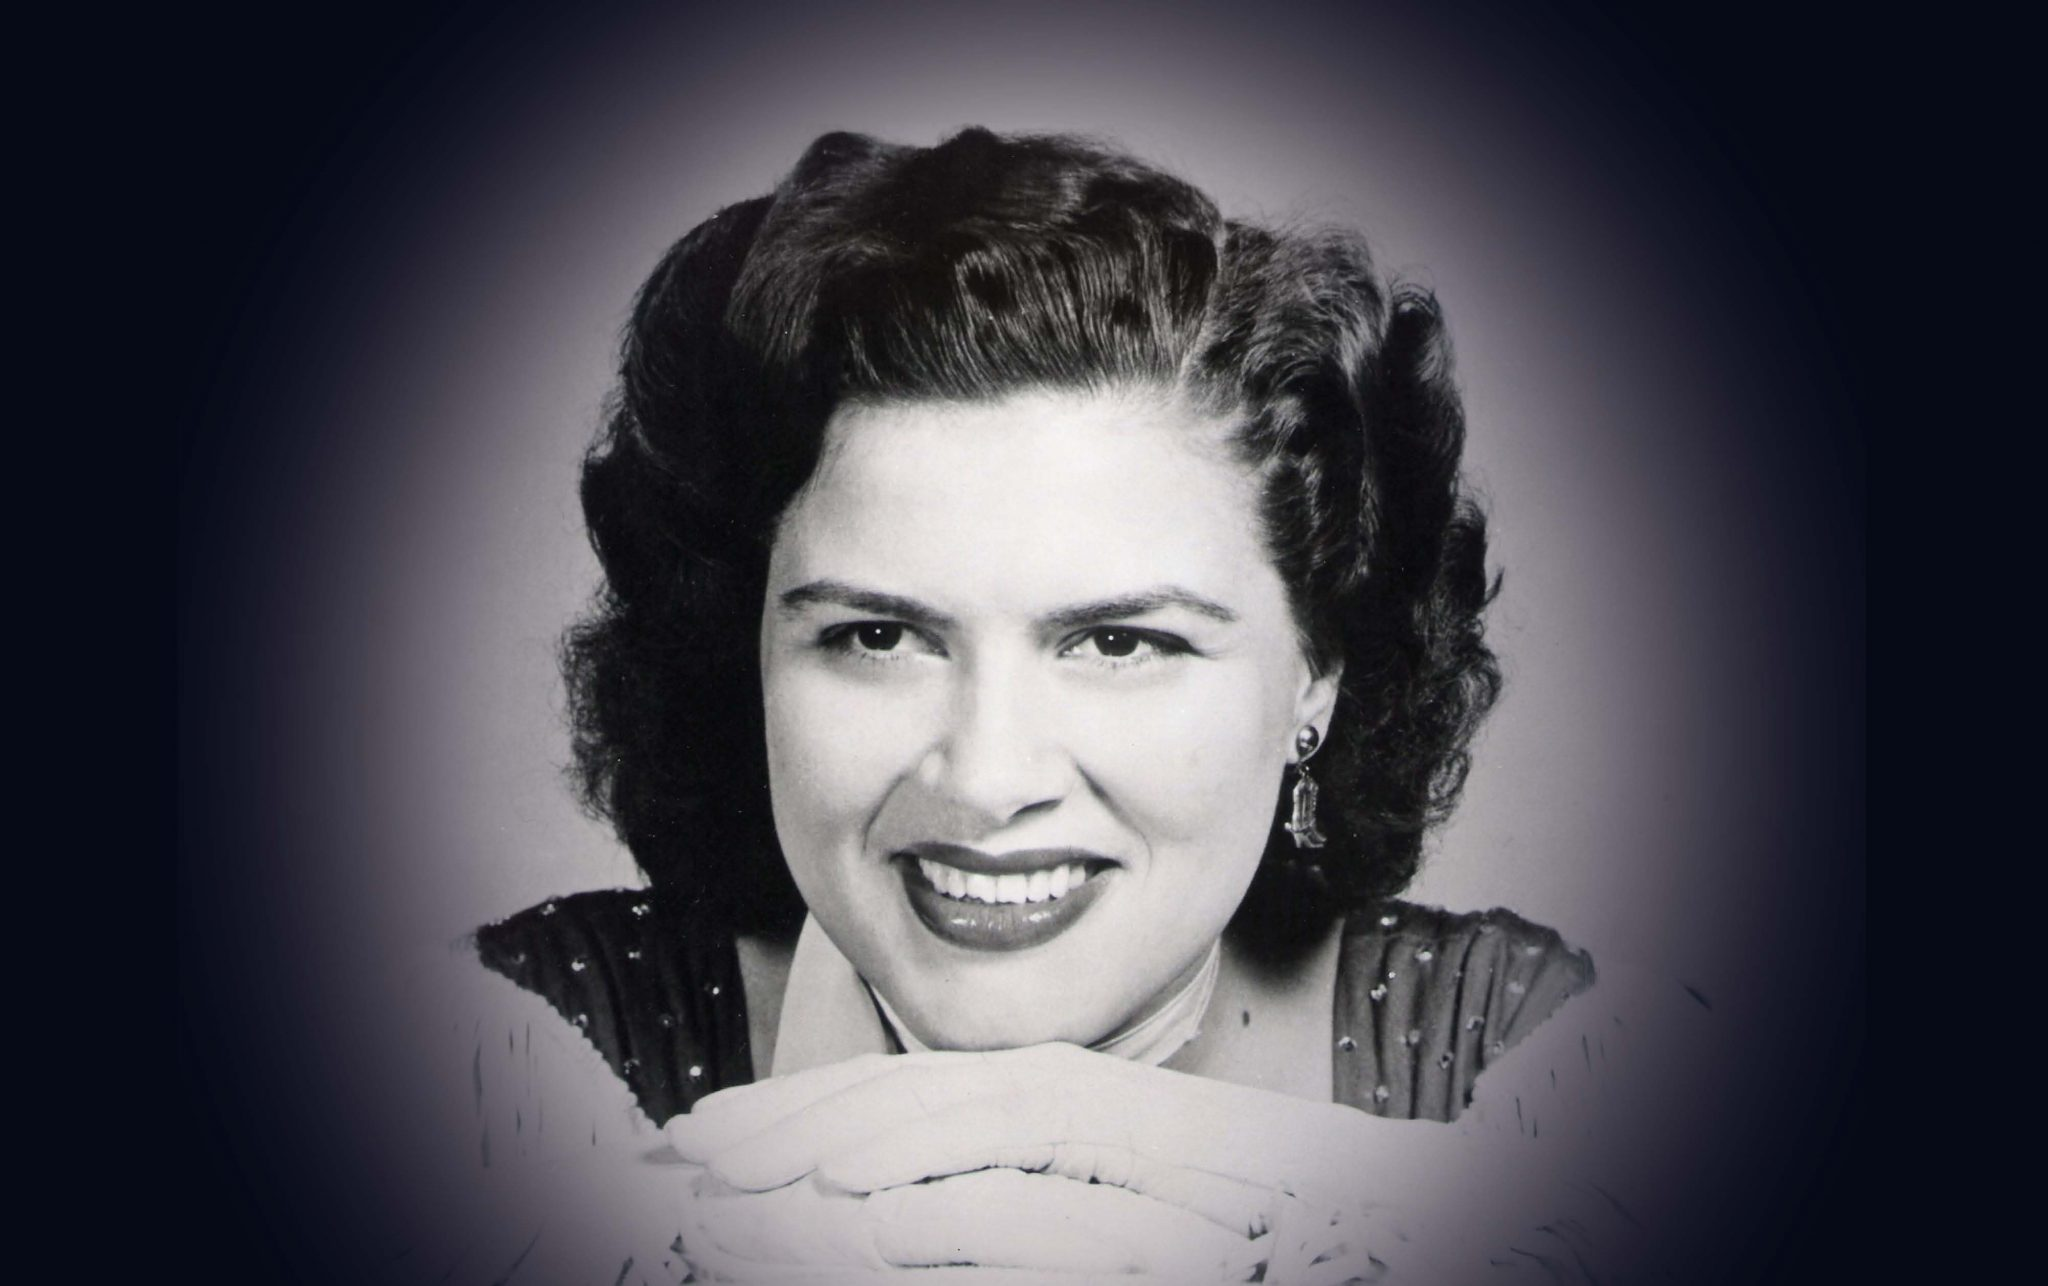 A Closer Walk With Patsy Cline – The Jewish Ensemble Theatre (Walled Lake, MI) April 23 – May 17, 2020